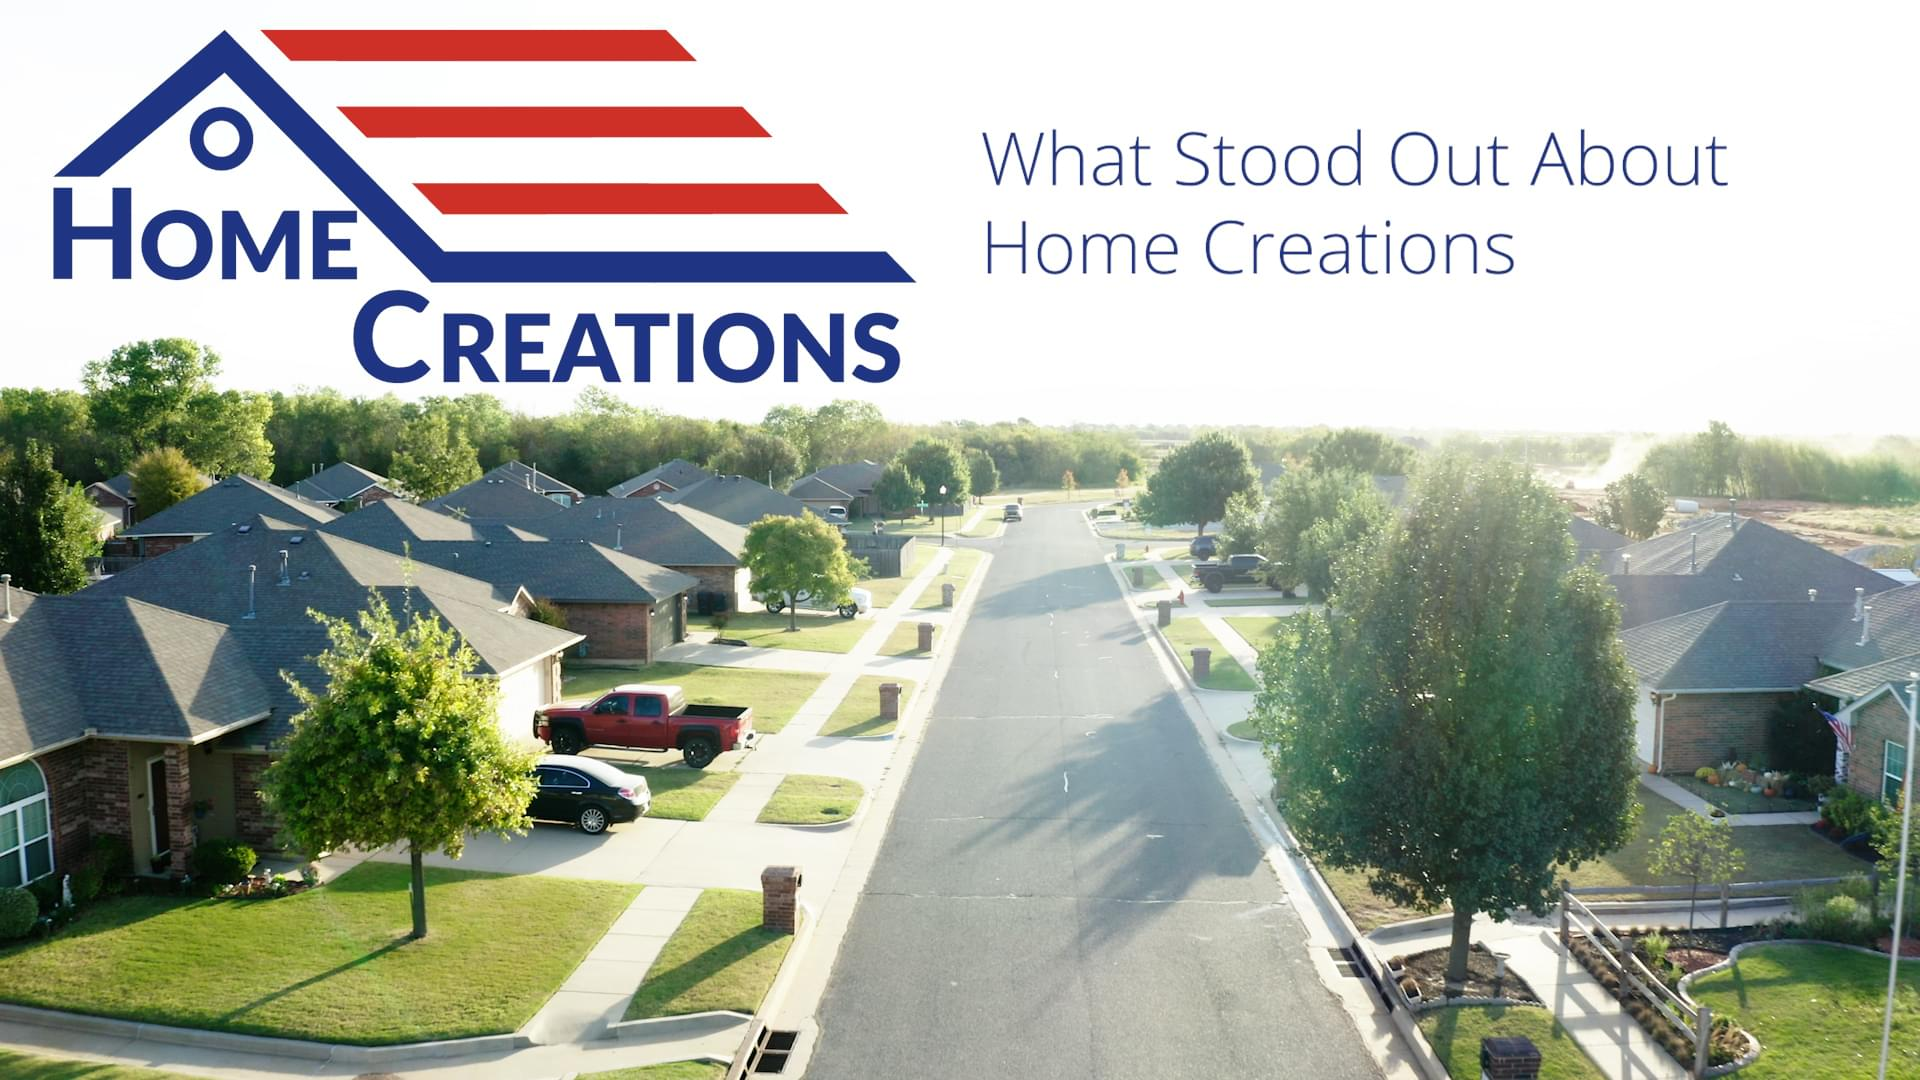 What Stood Out About Home Creations